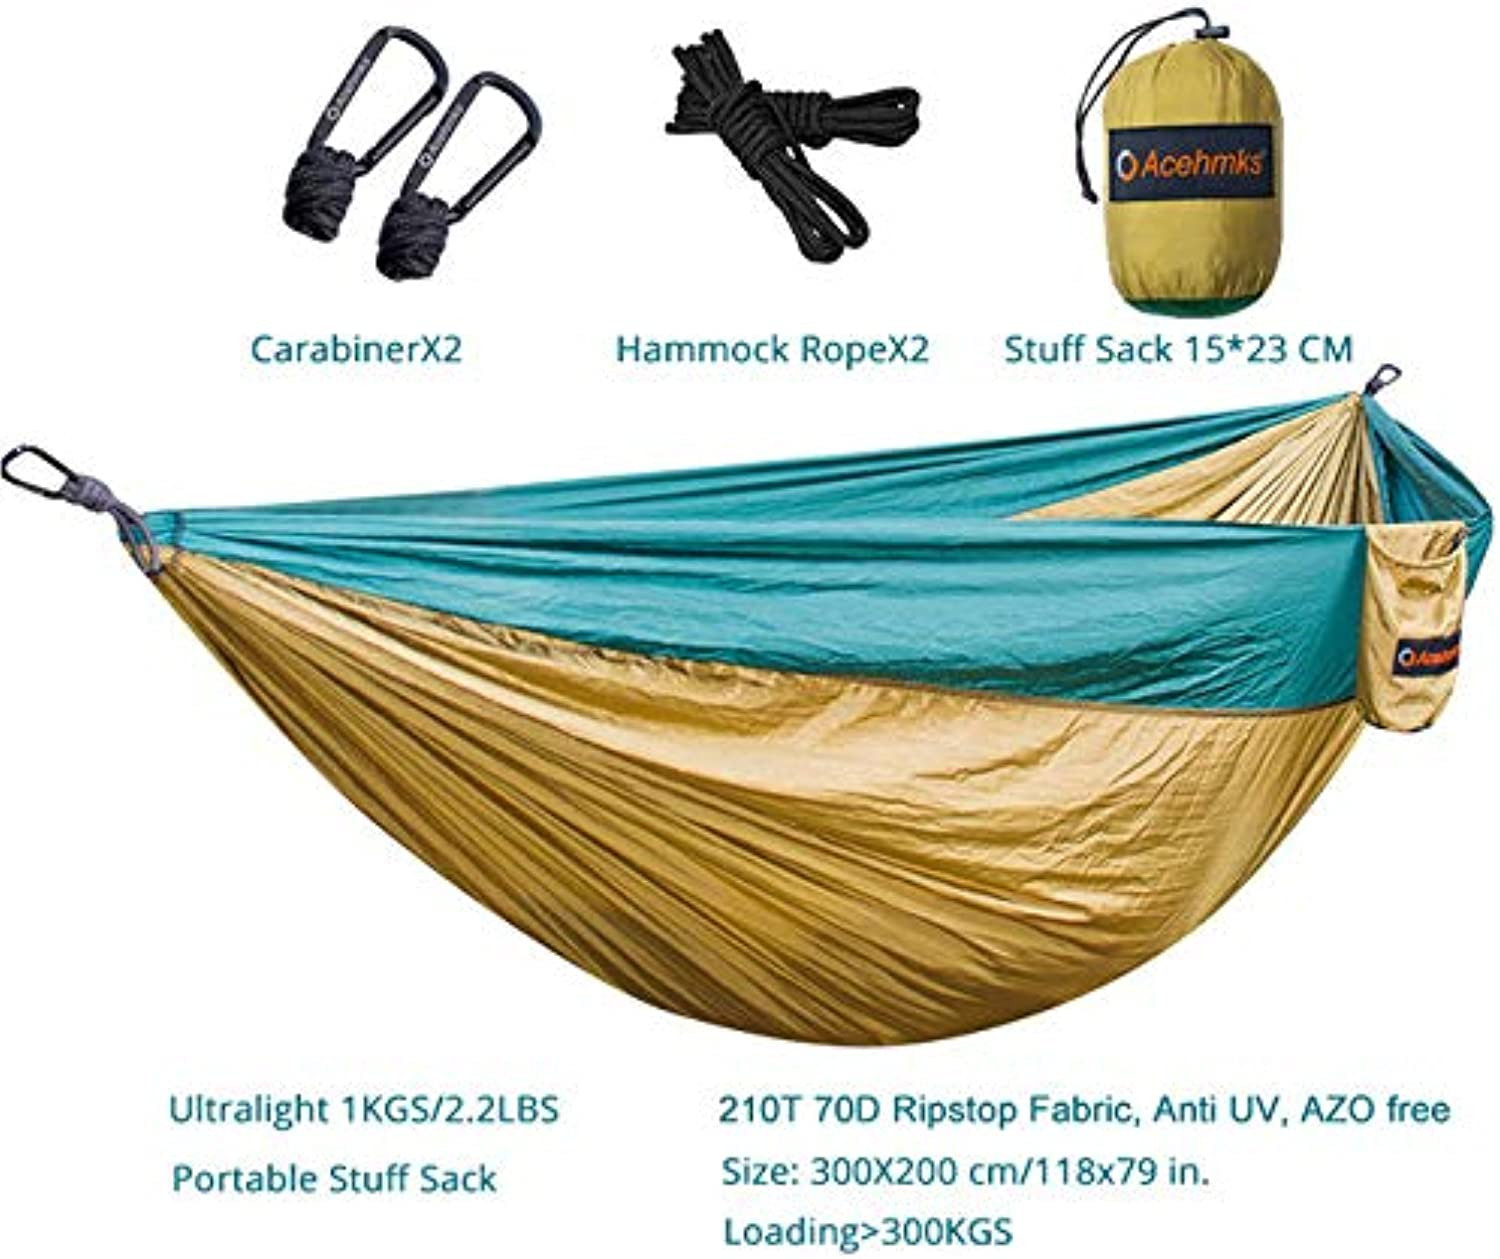 Outdoor Hammocks Ultralight Portable Ripstop 210T 70D Nylon Hamc with 2 Carabiners Hammock Tree Straps 300CMX2PCS Hamaca Acehmks   Green with Ropes